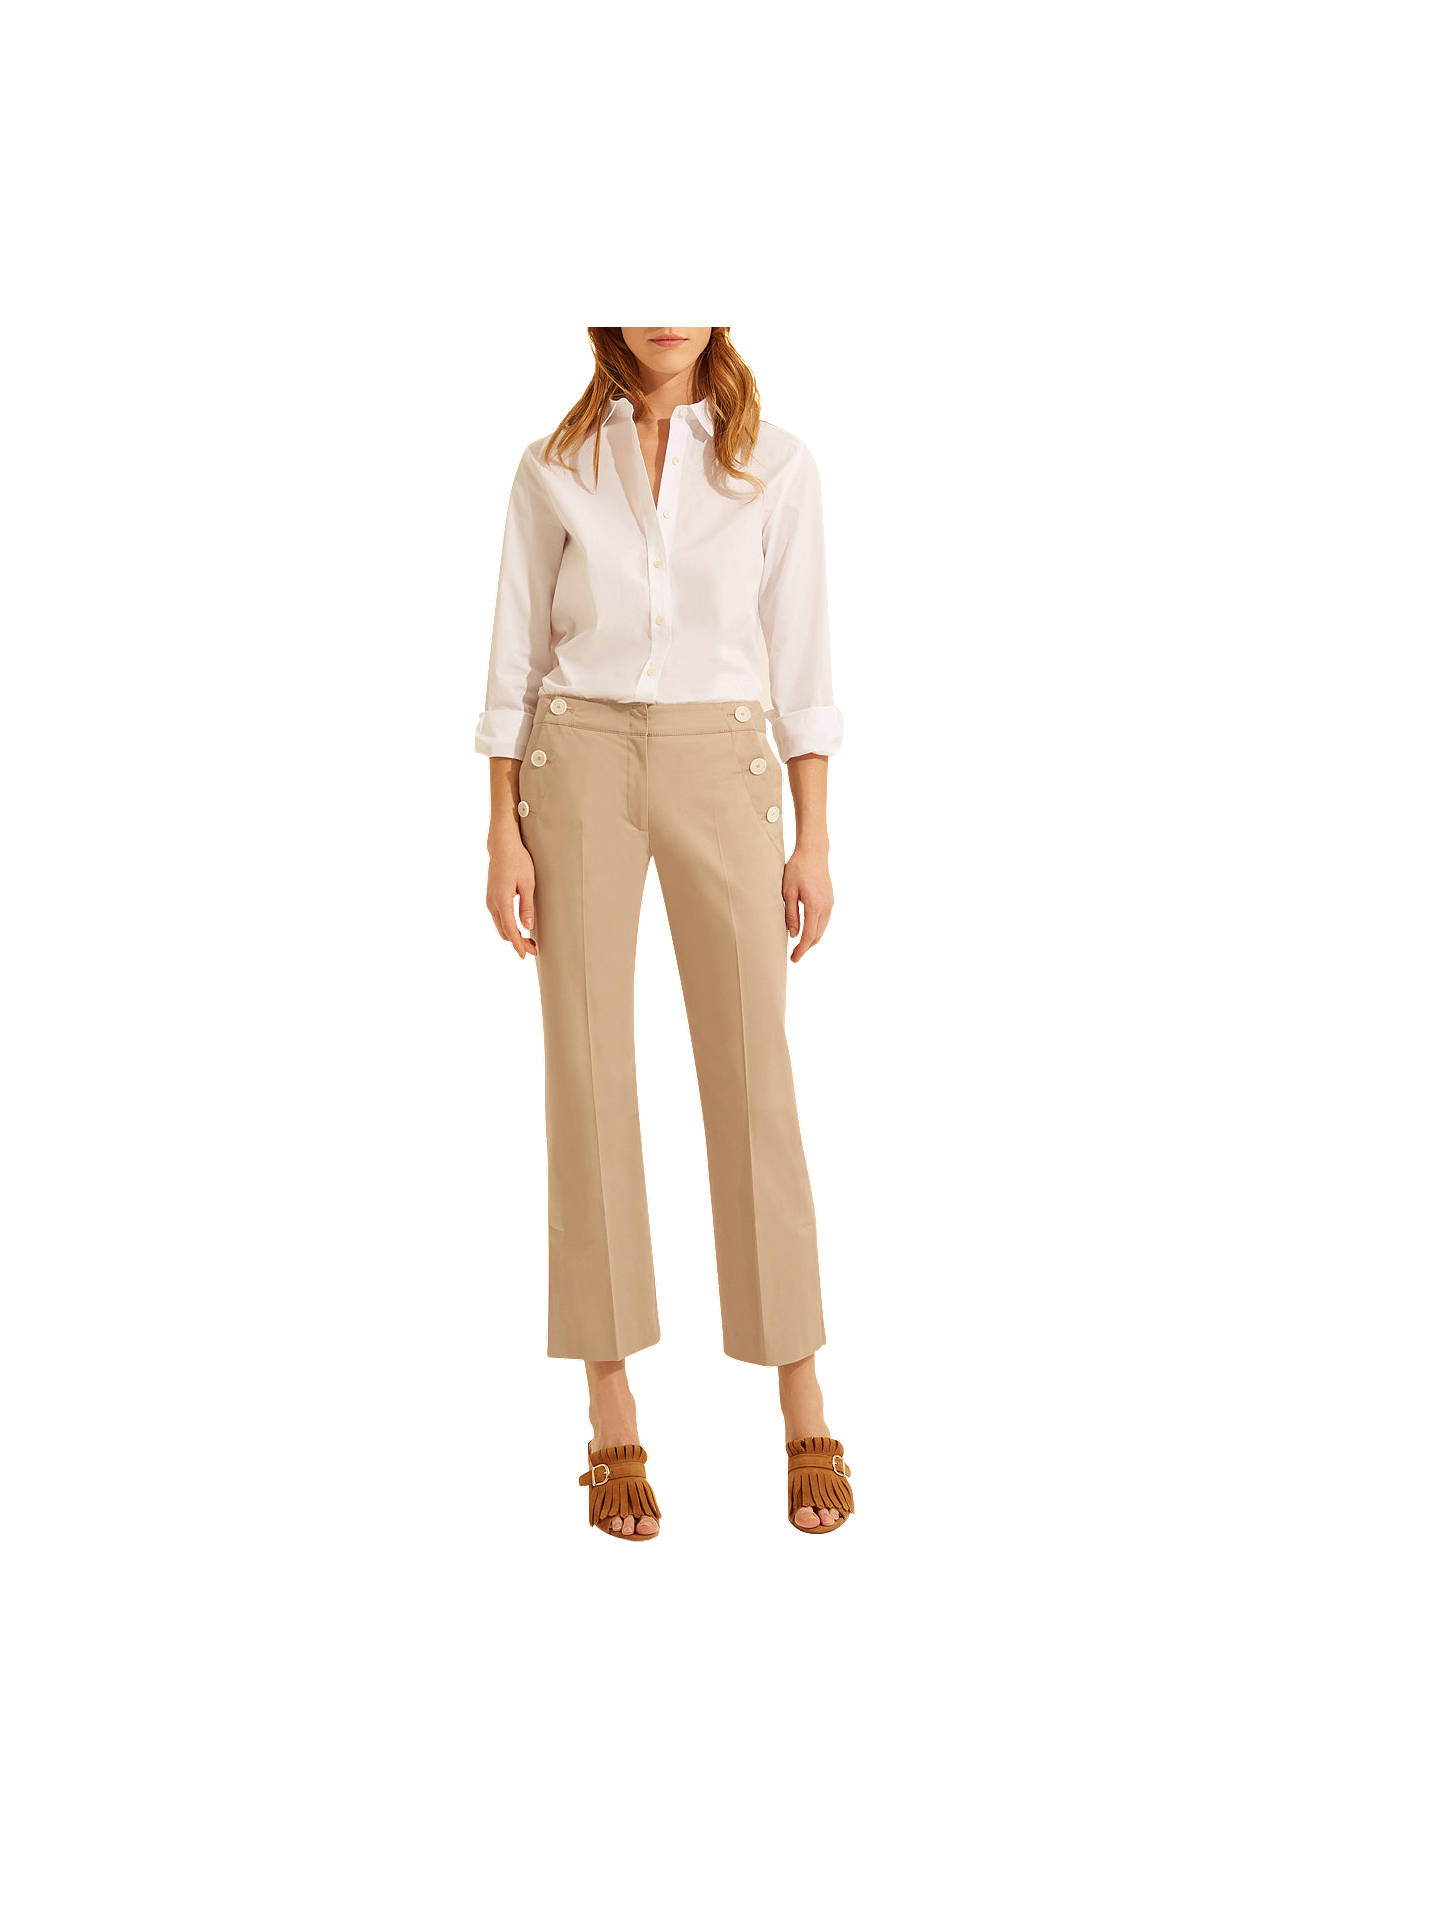 BuyGerard Darel Mandy Trousers, Beige, 8 Online at johnlewis.com